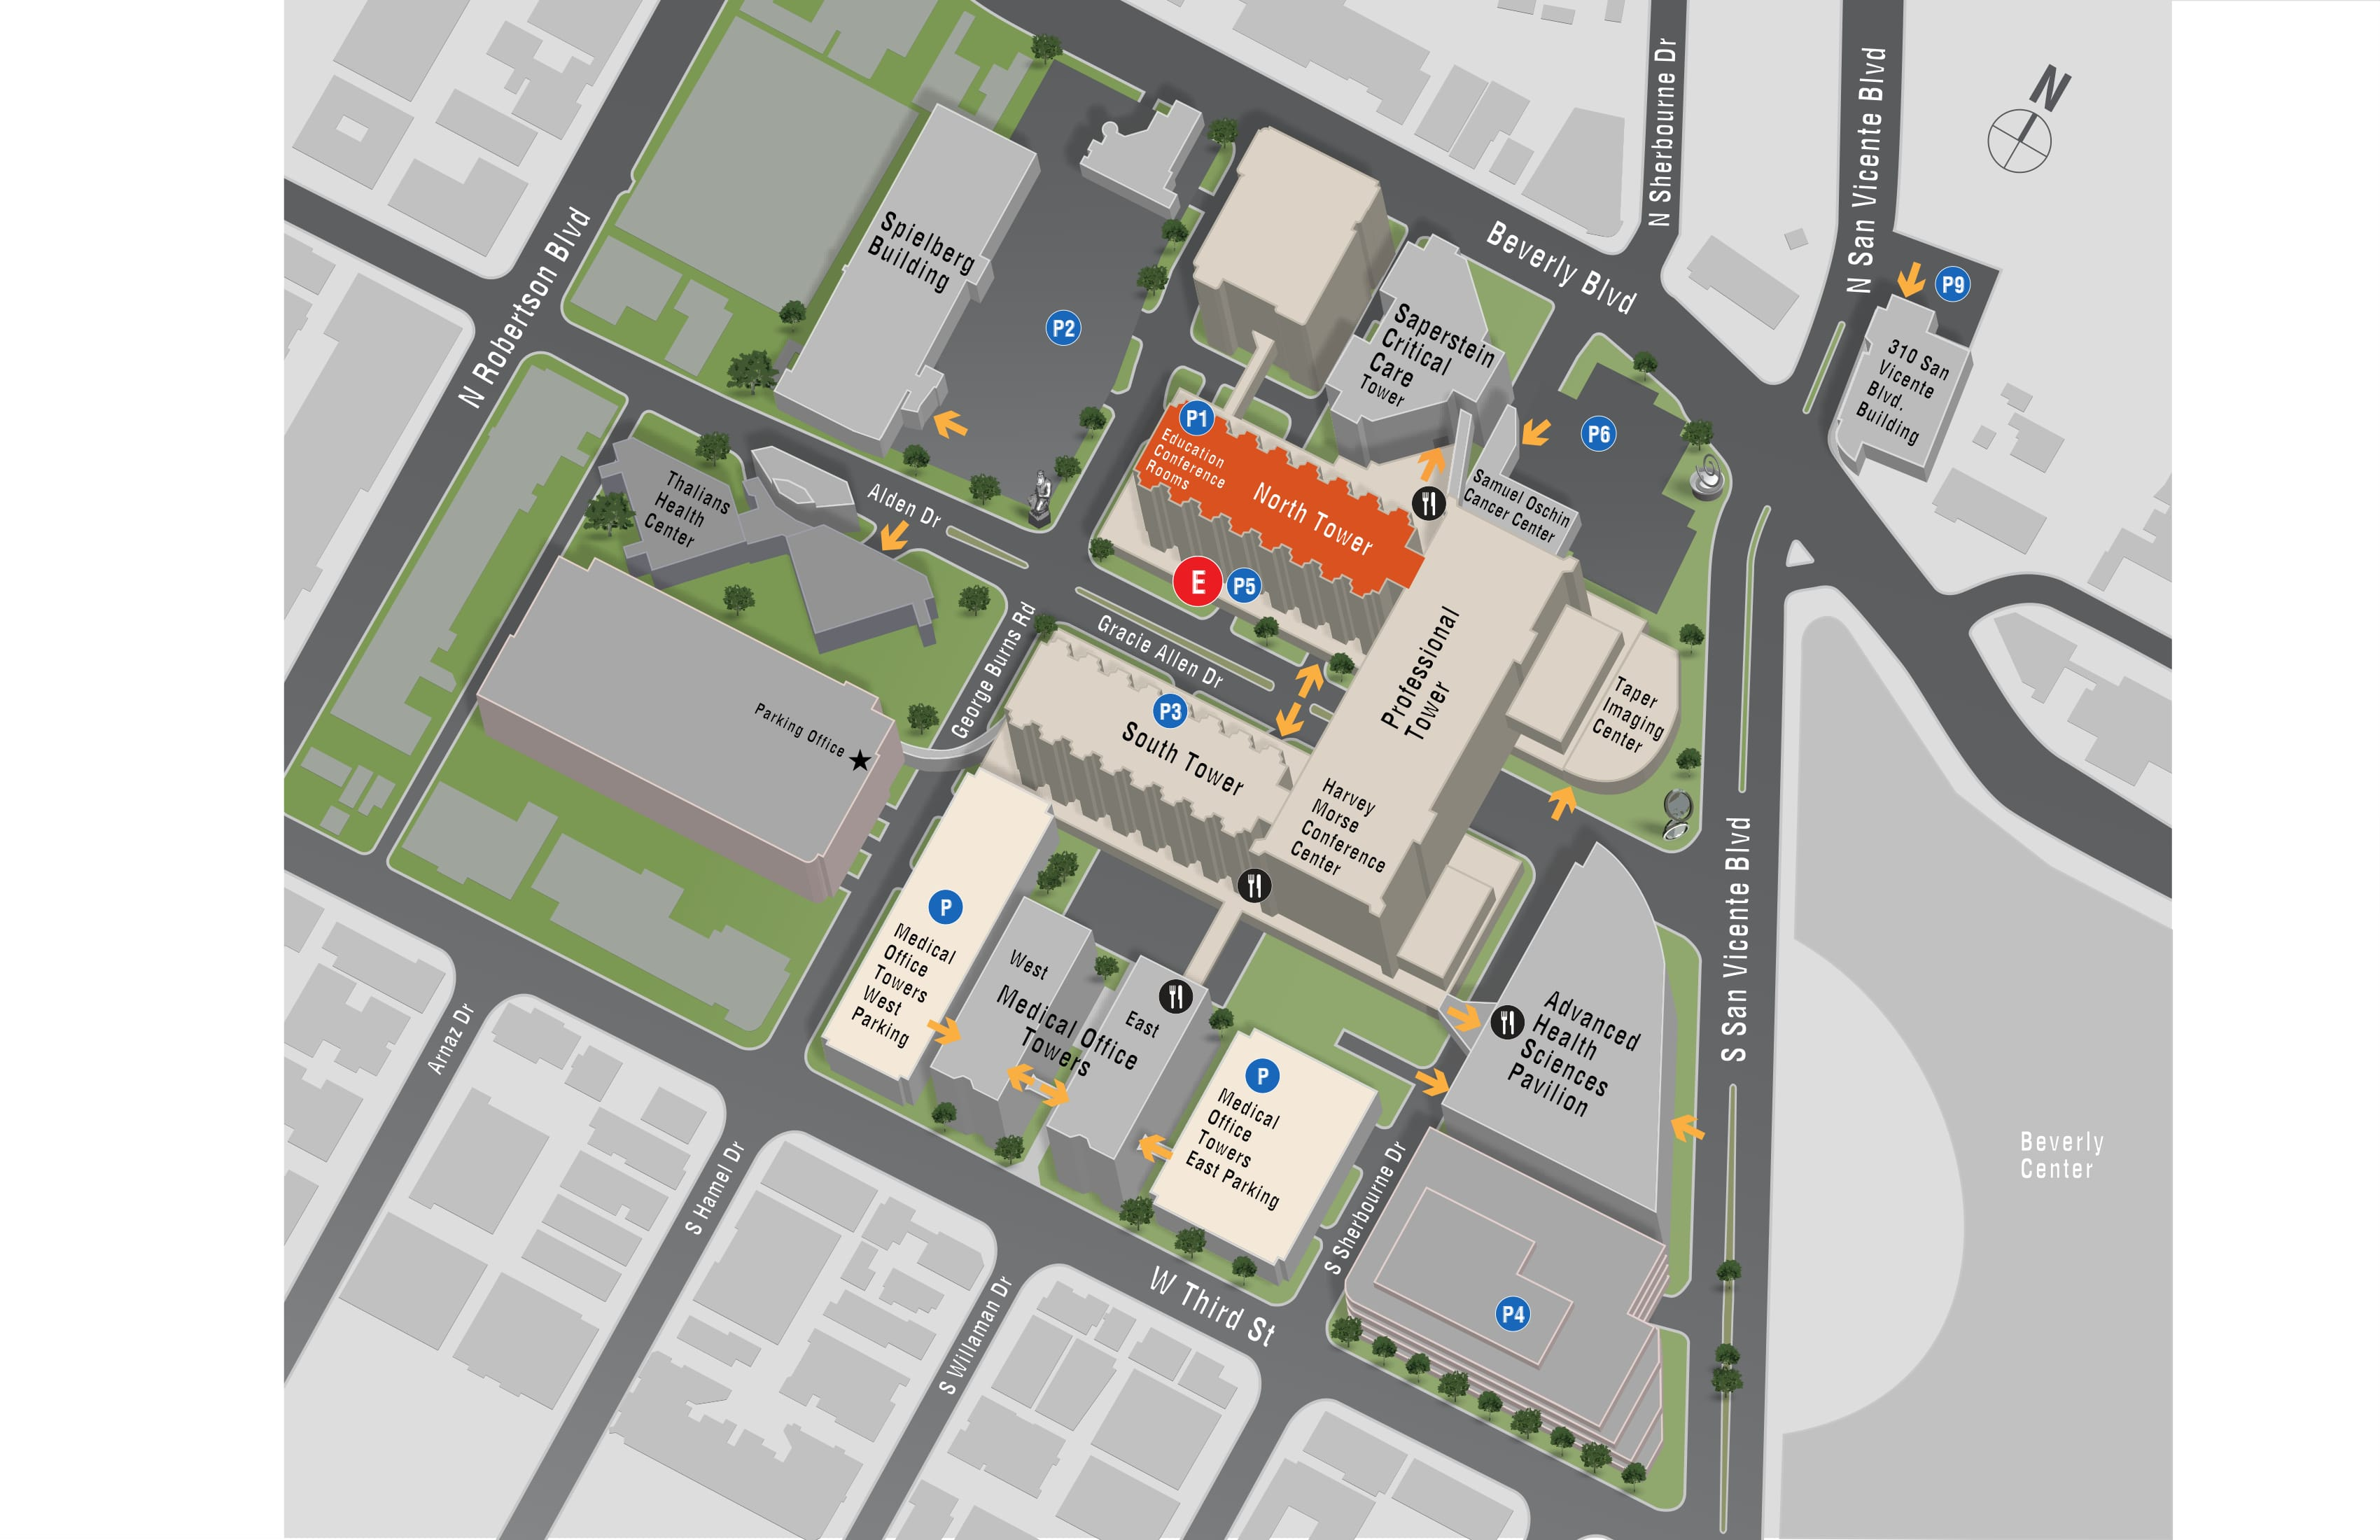 Parking map for Volunteer Services